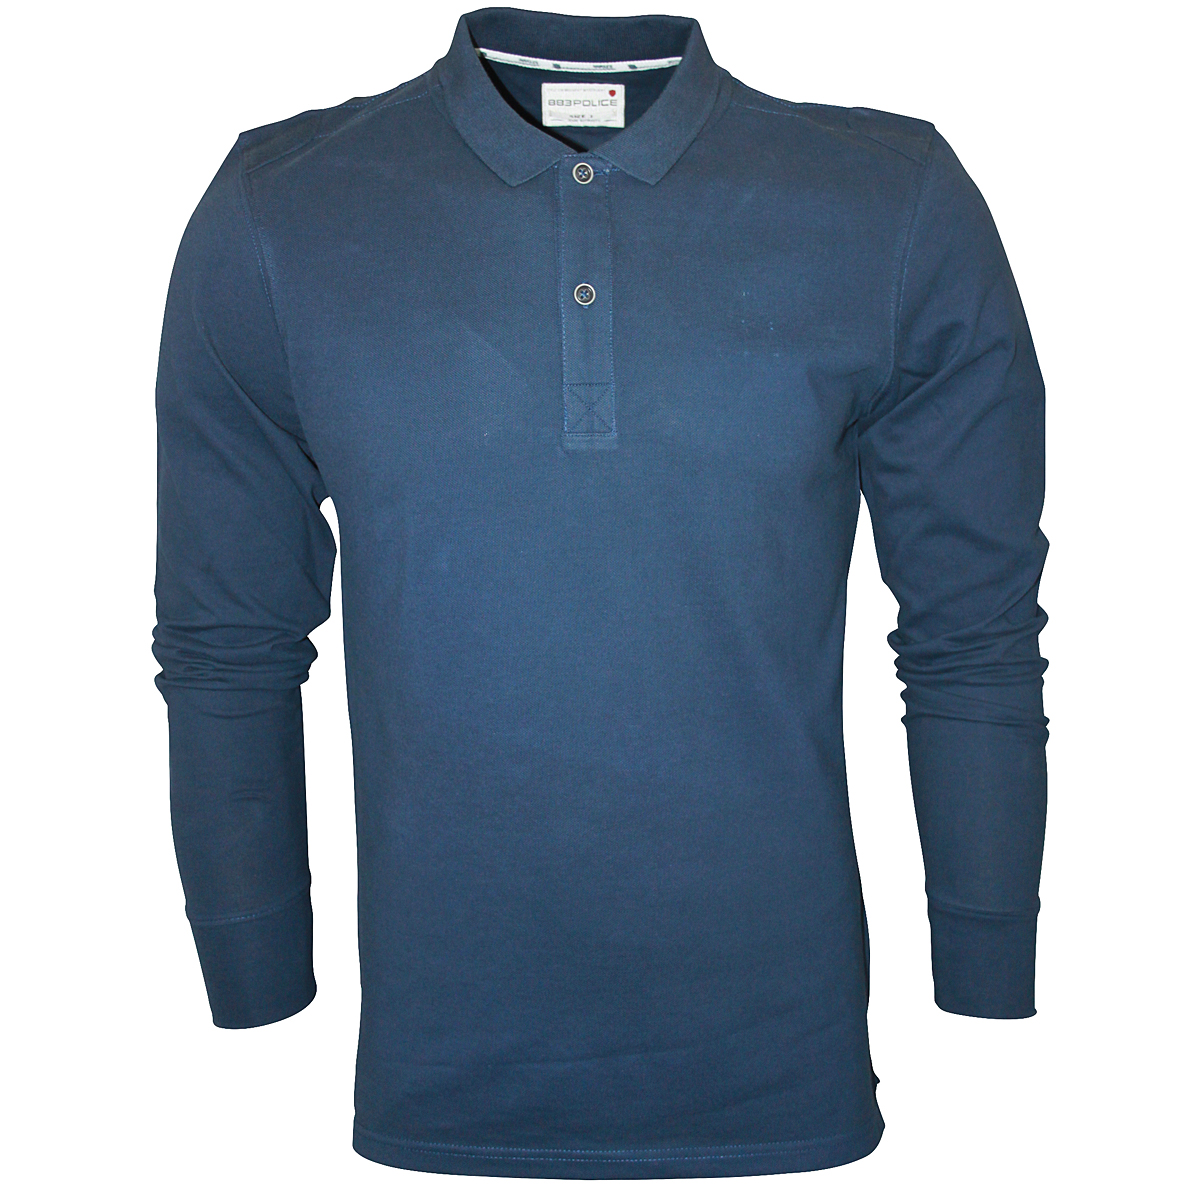 Find Men's Sale Long-Sleeve Tops at tokosepatu.ga Browse a wide range of styles and order online.